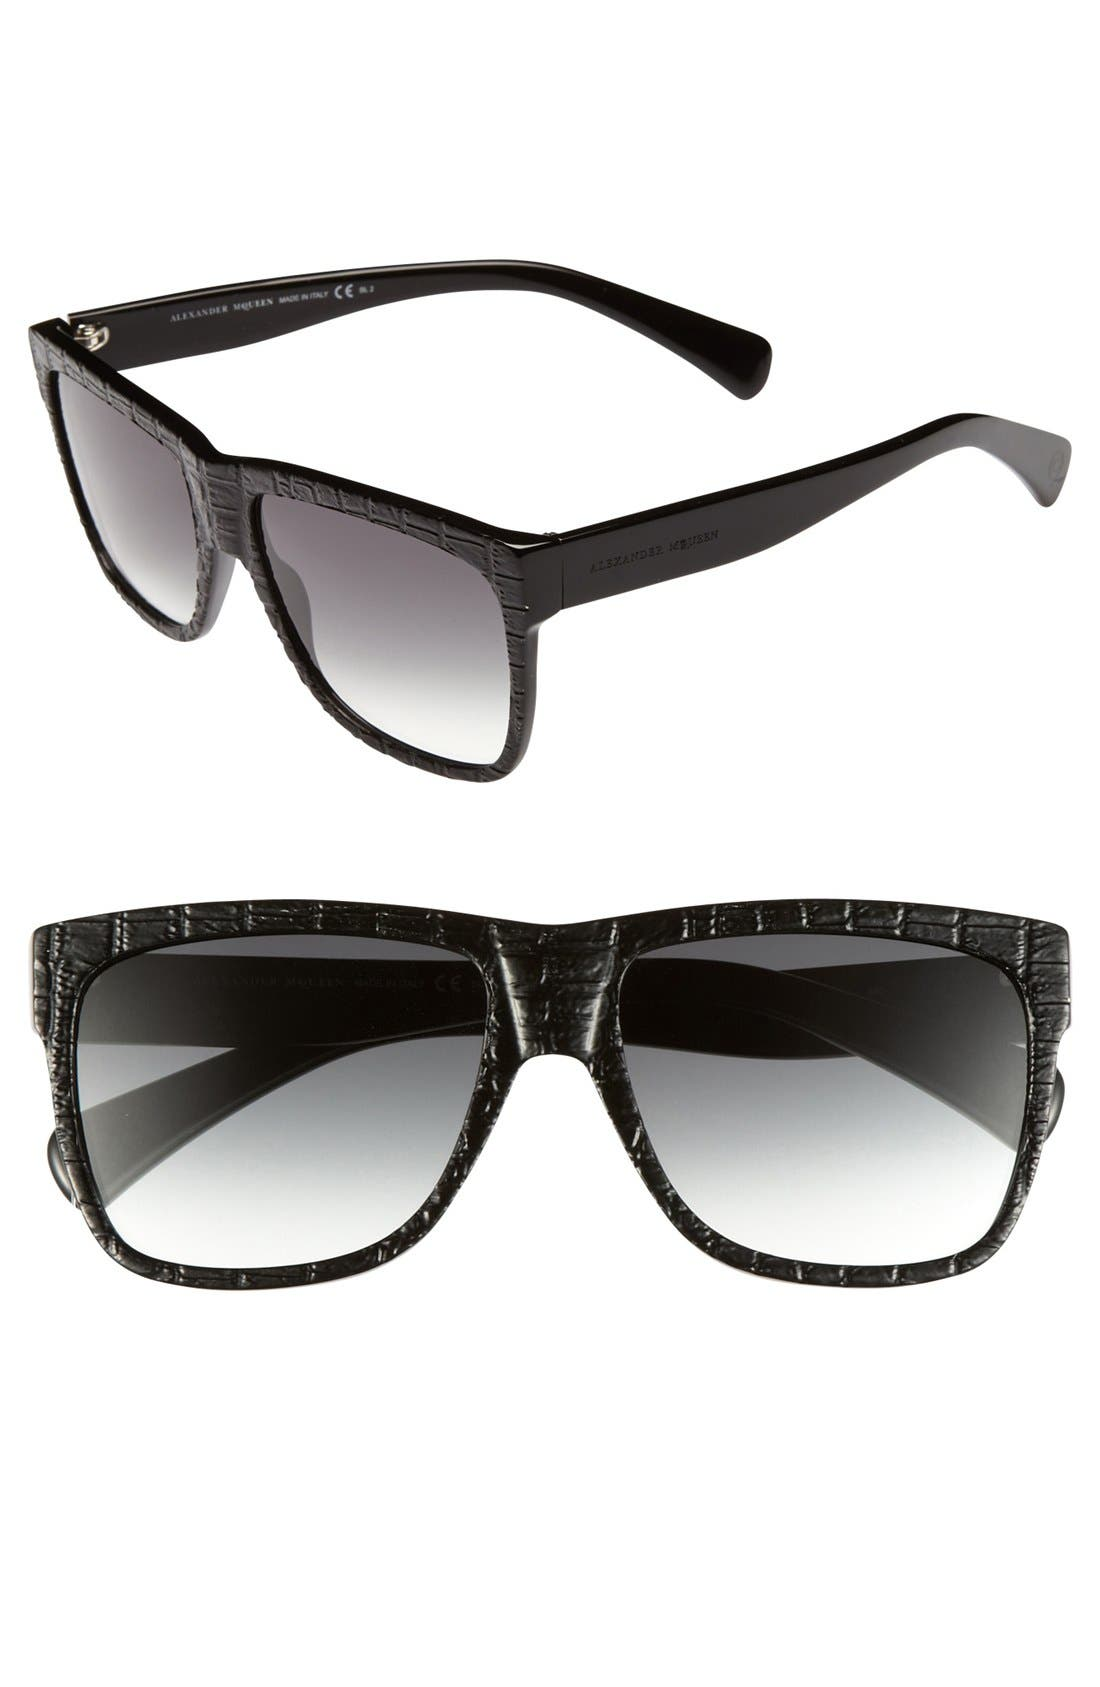 Main Image - Alexander McQueen 55mm Retro Sunglasses